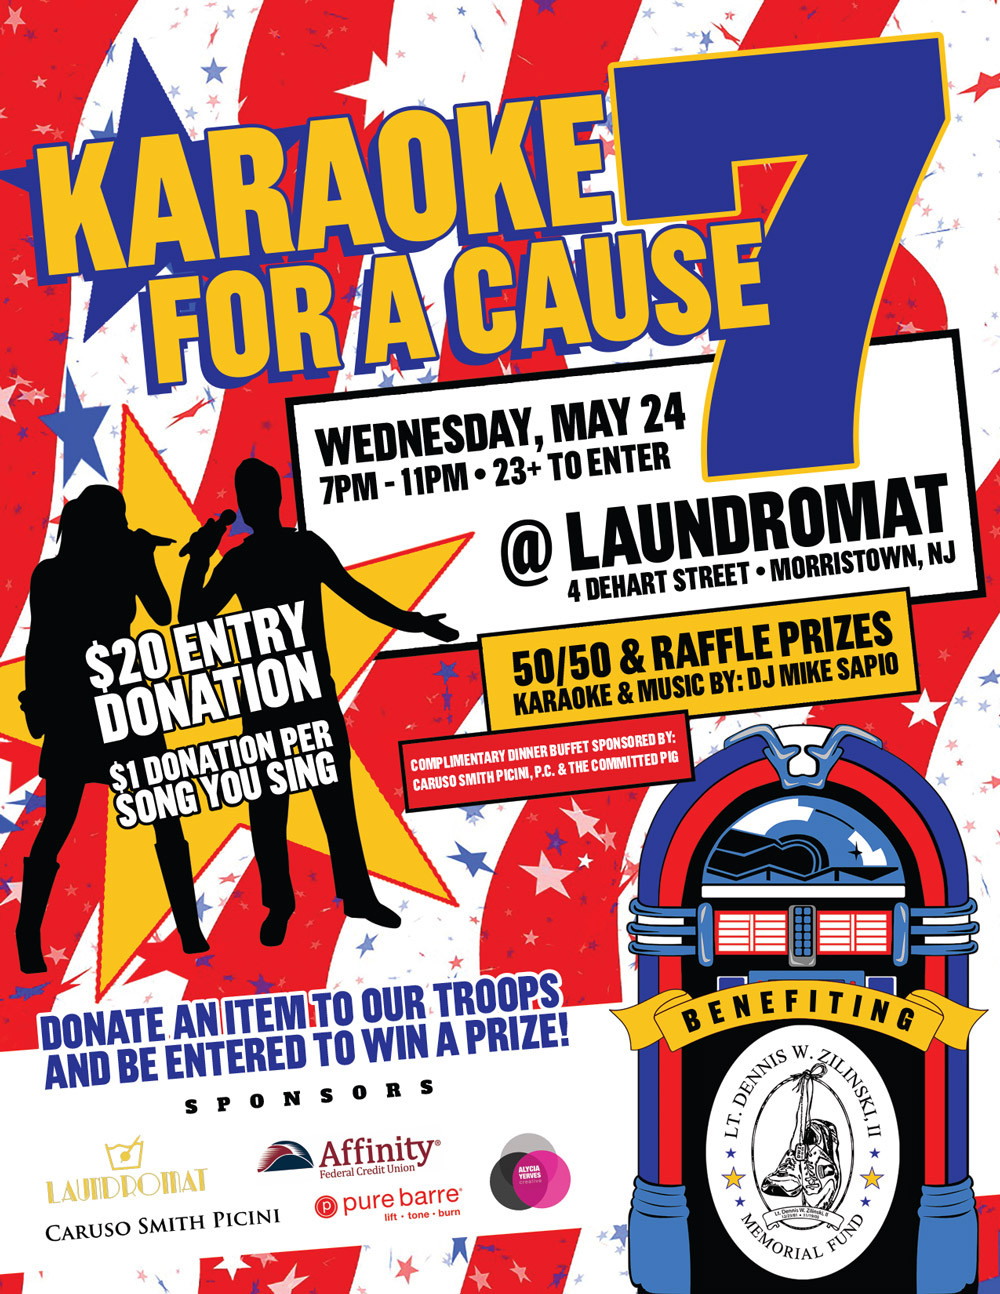 Karaoke for a Cause 7